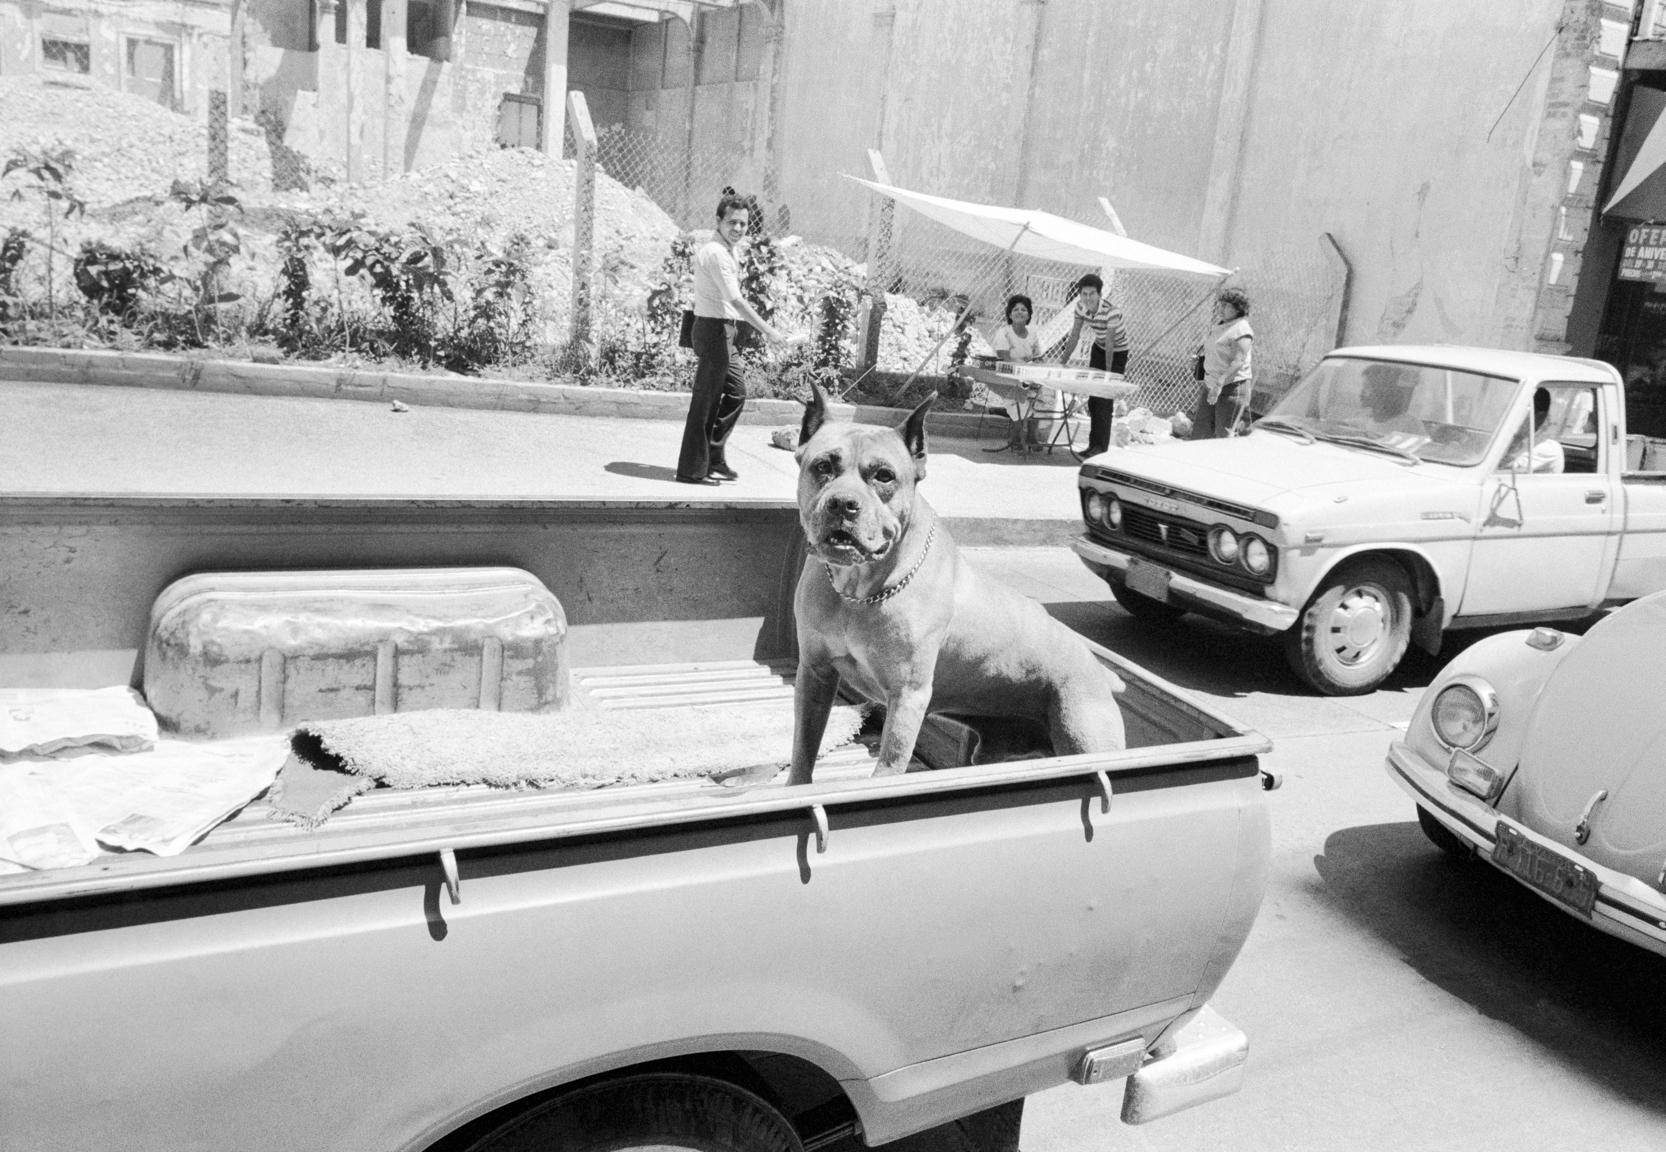 A pit-bull like dog rides in the back of a private pick-up truck June 1983 in downtown San Salvador, El Salvador.